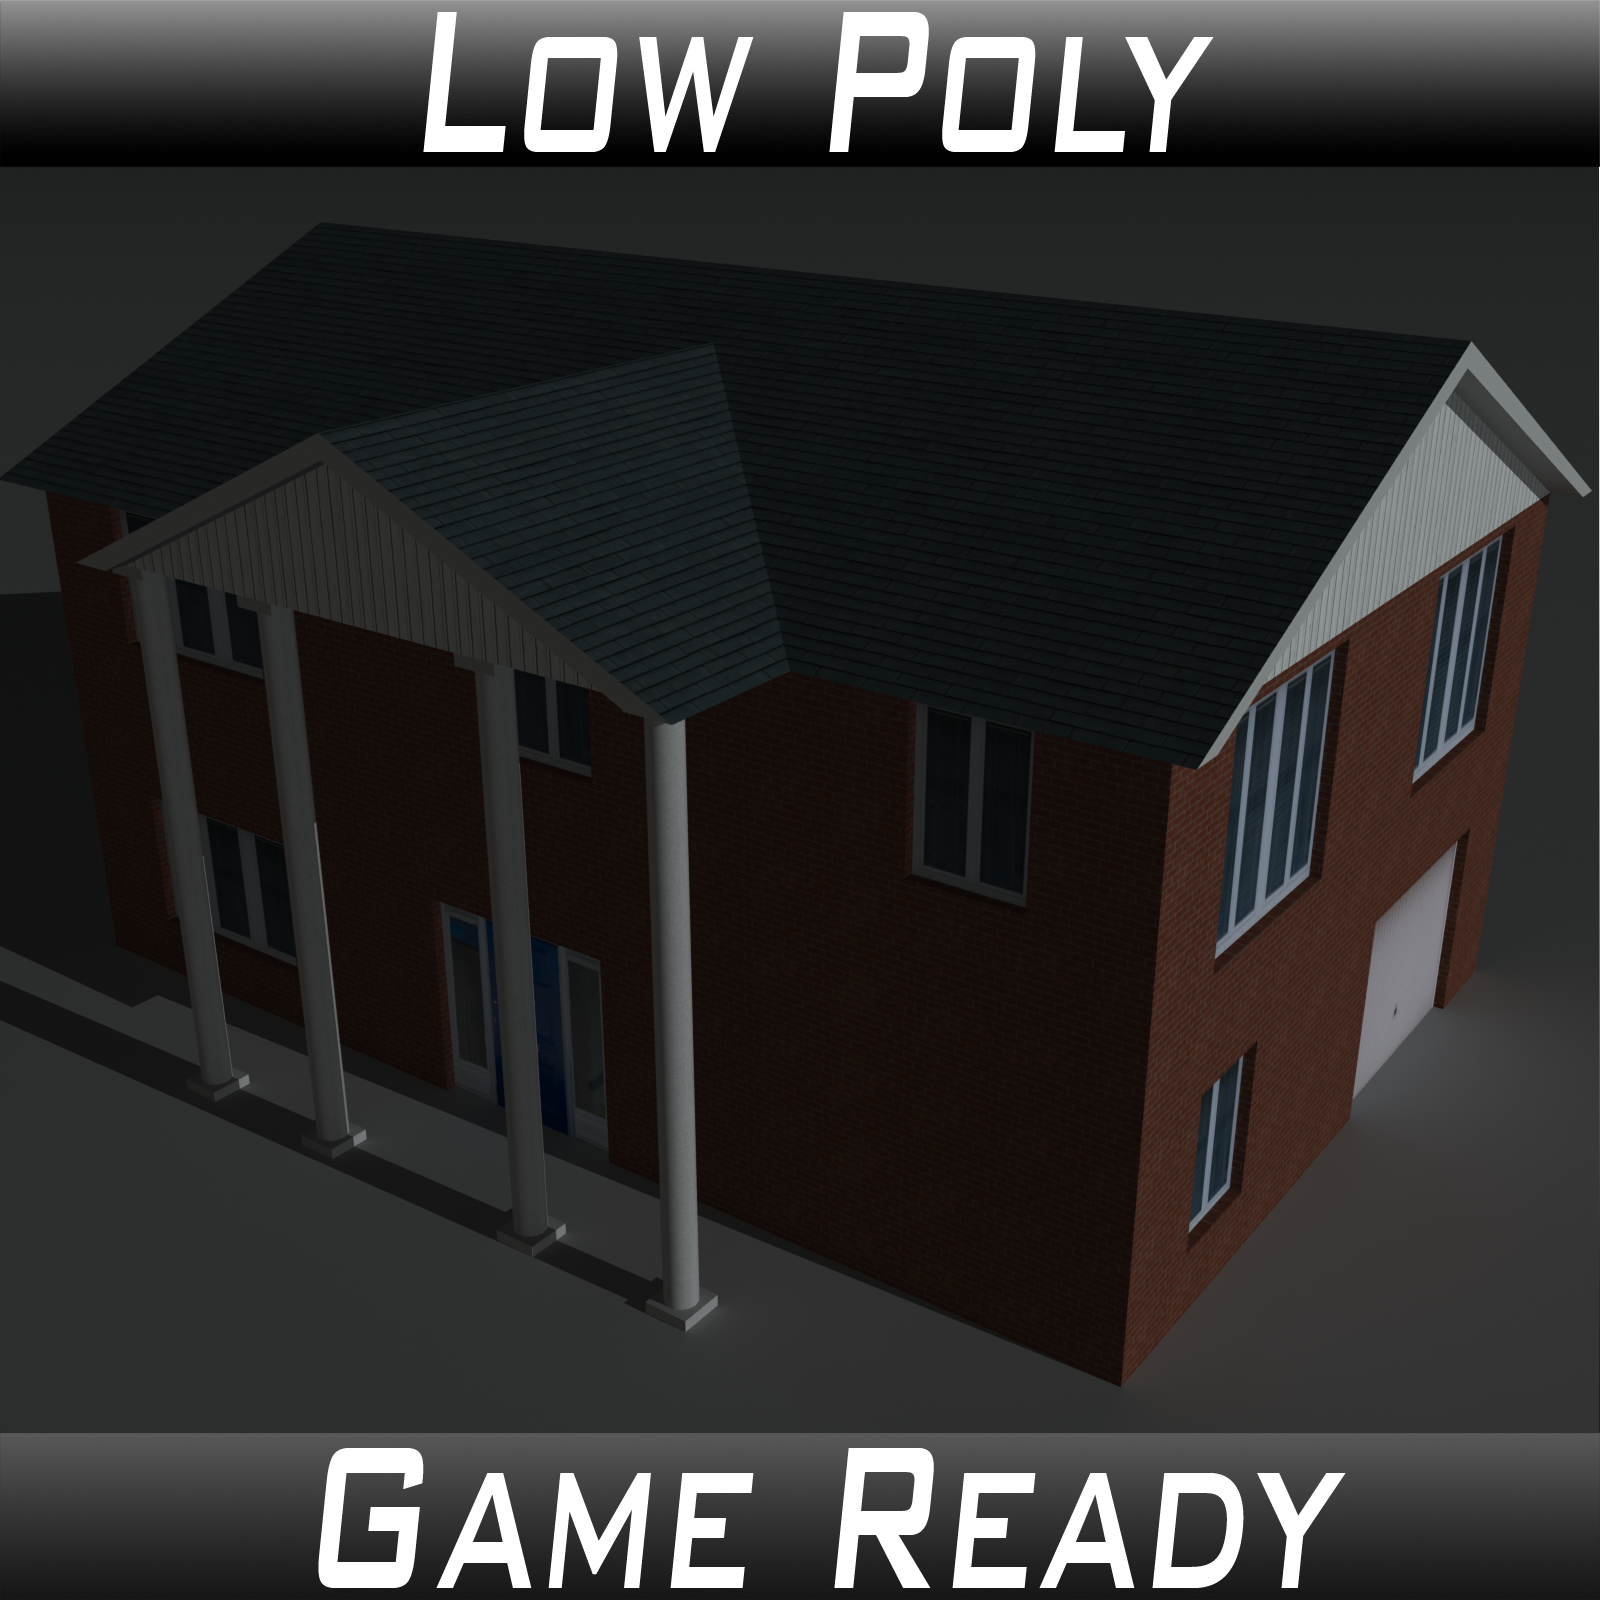 Low Poly House 8 - Extended Licence